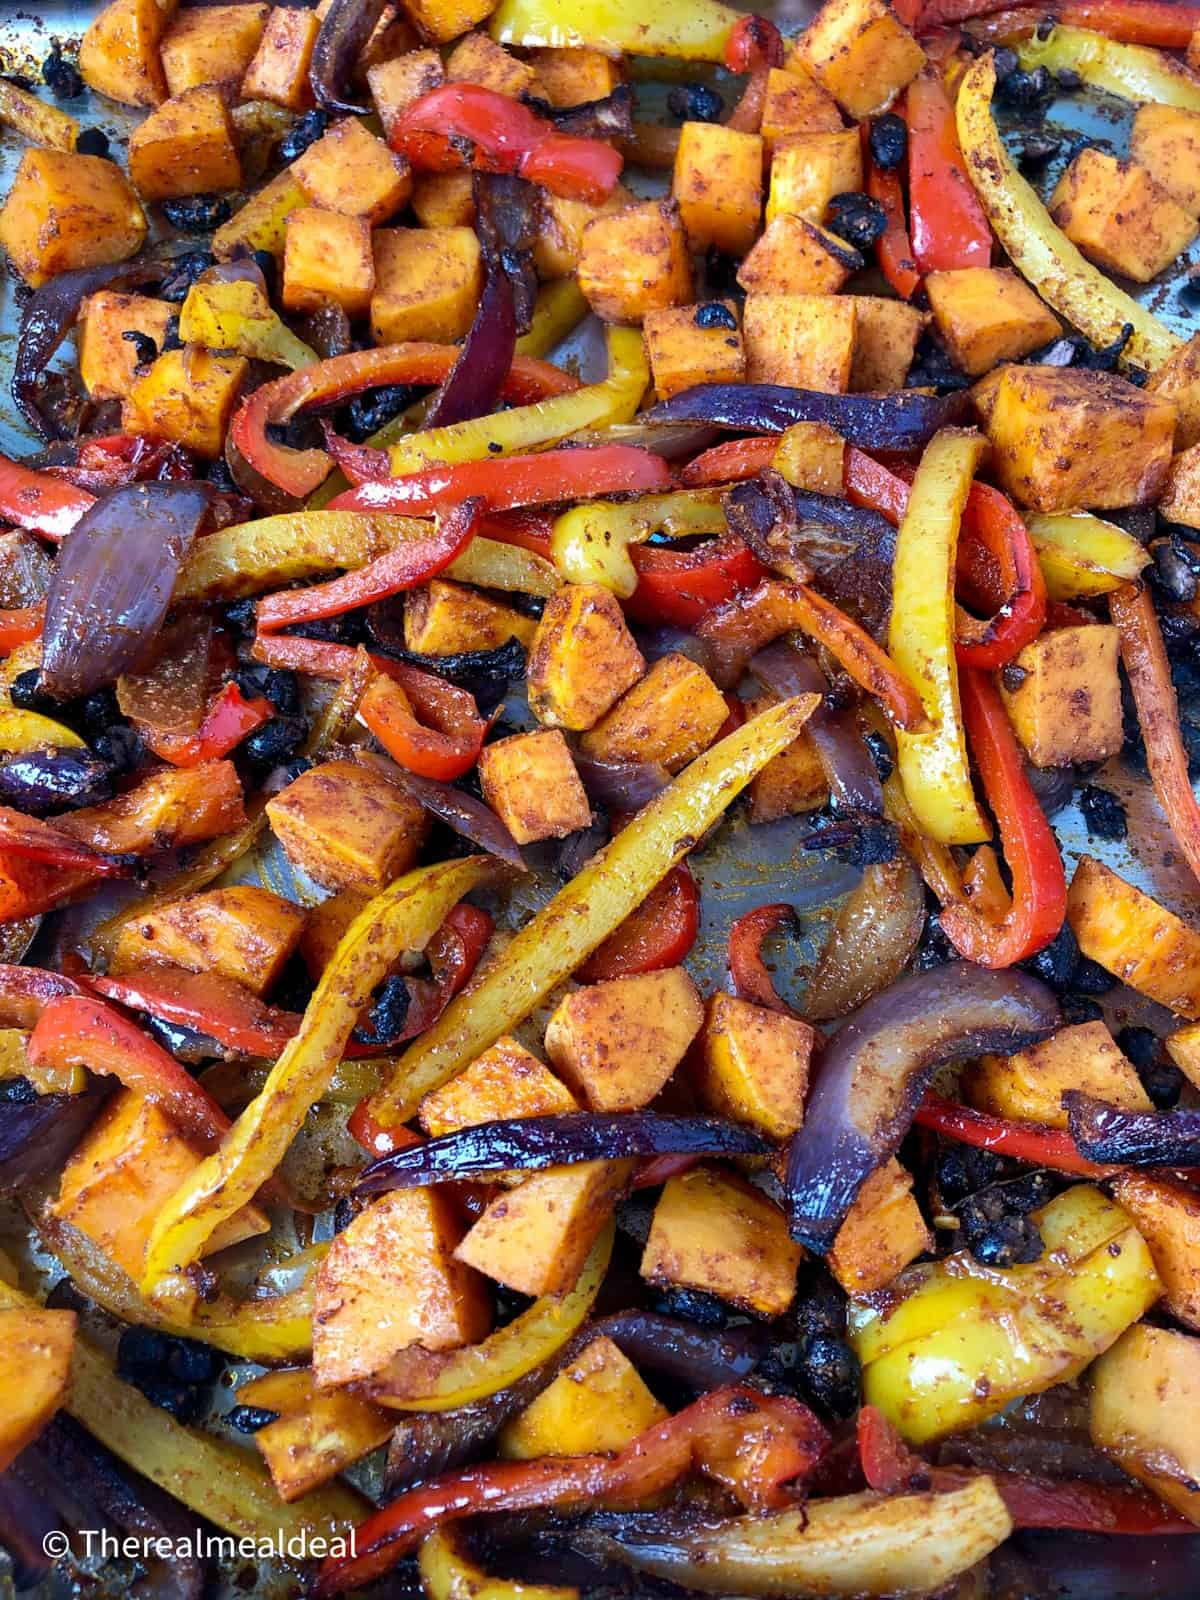 Roasted red and yellow peppers red onions sweet potatoes and black beans in a tray